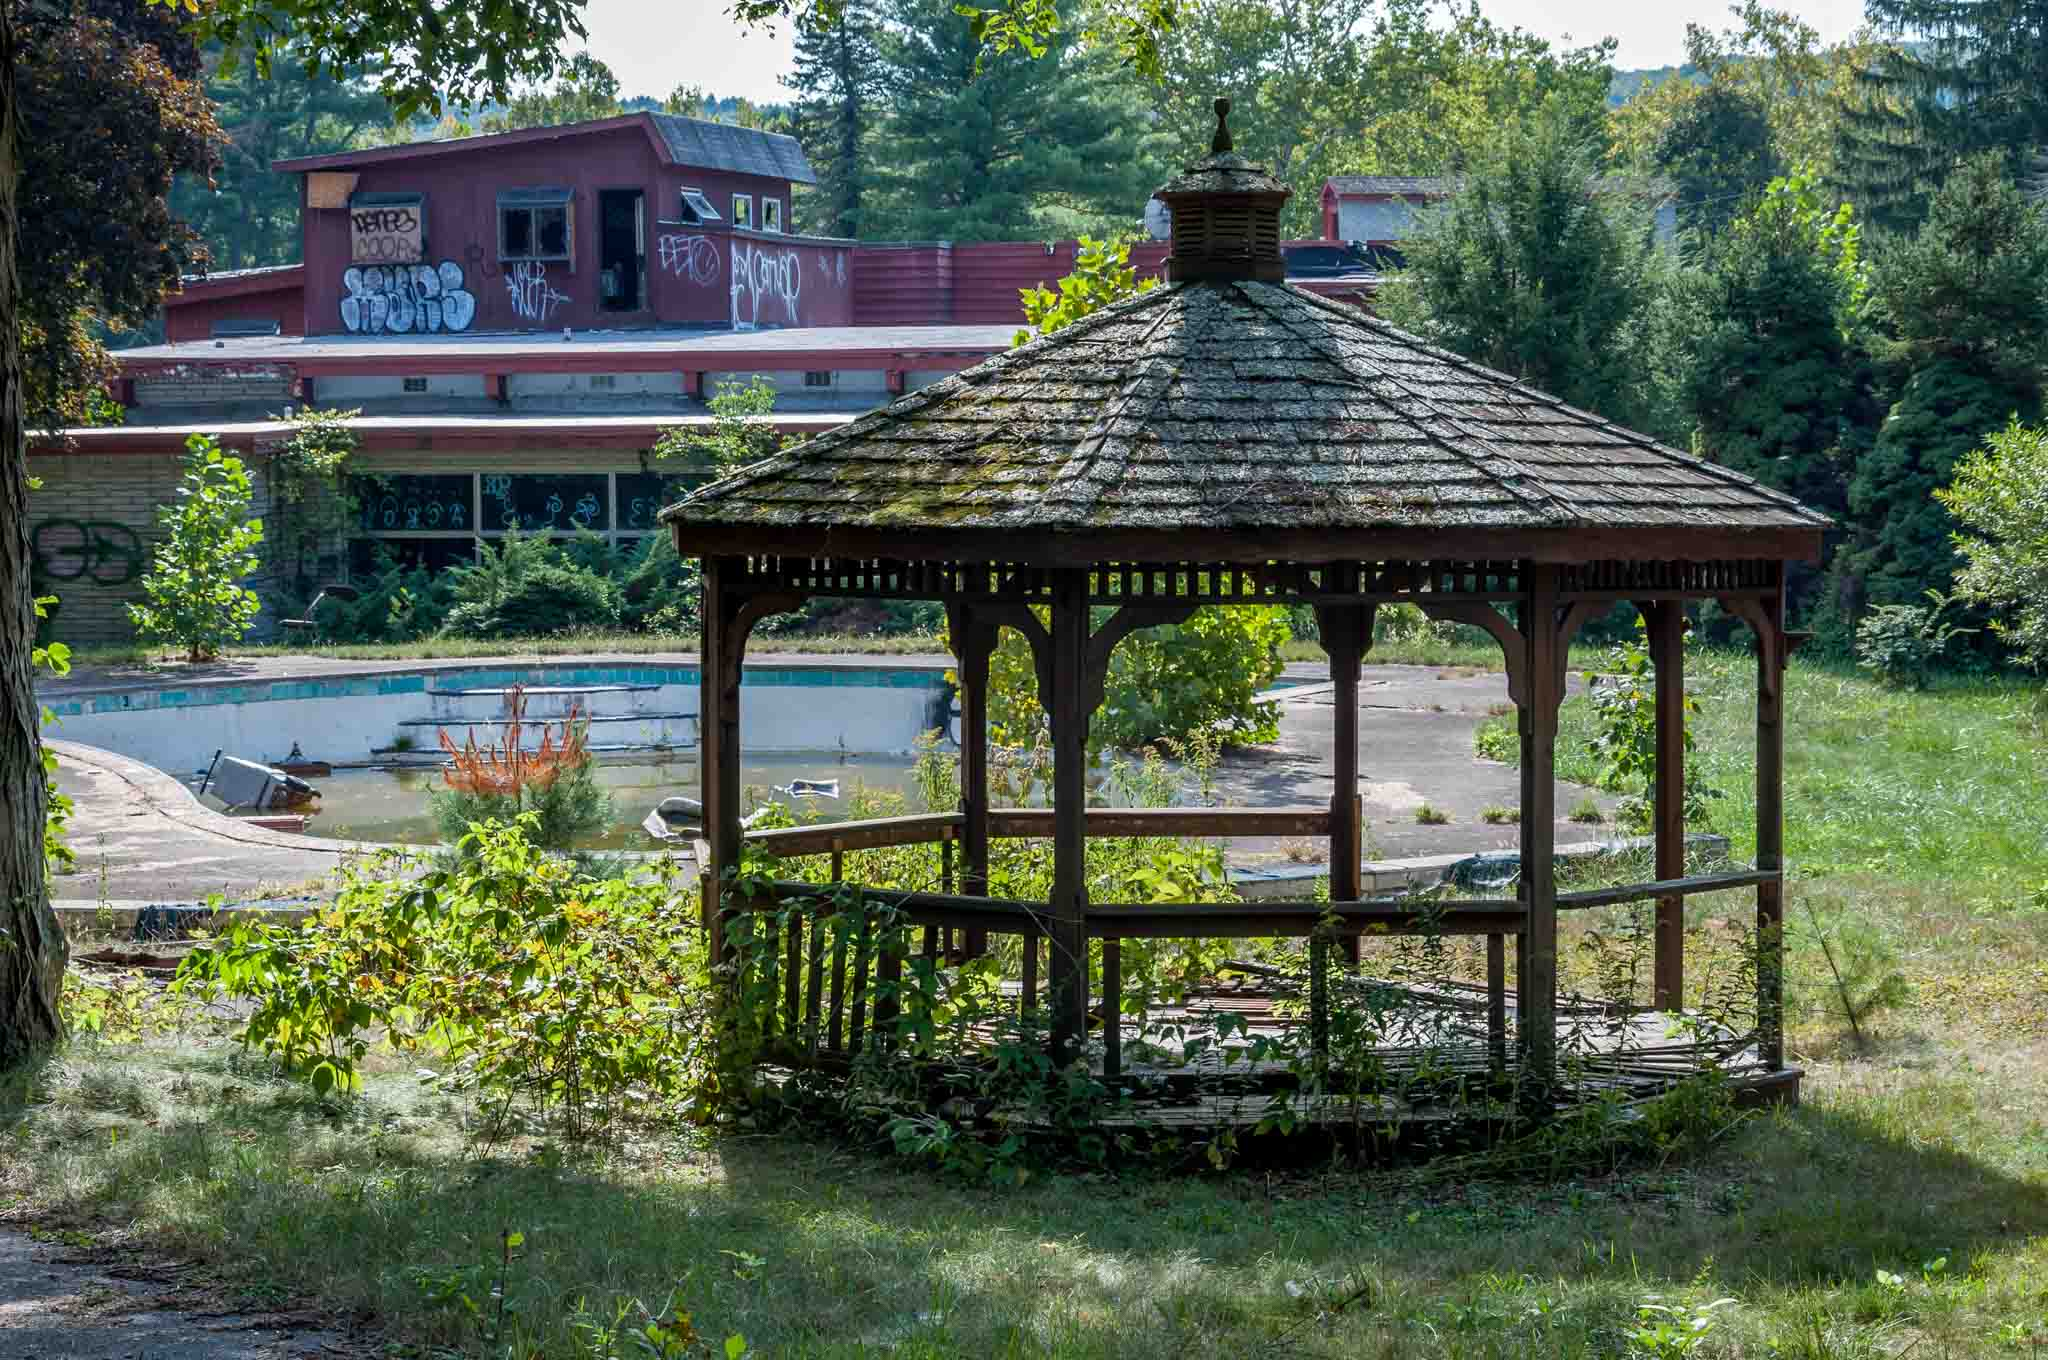 A gazebo at one of the abandoned resorts in Pennsylvania.